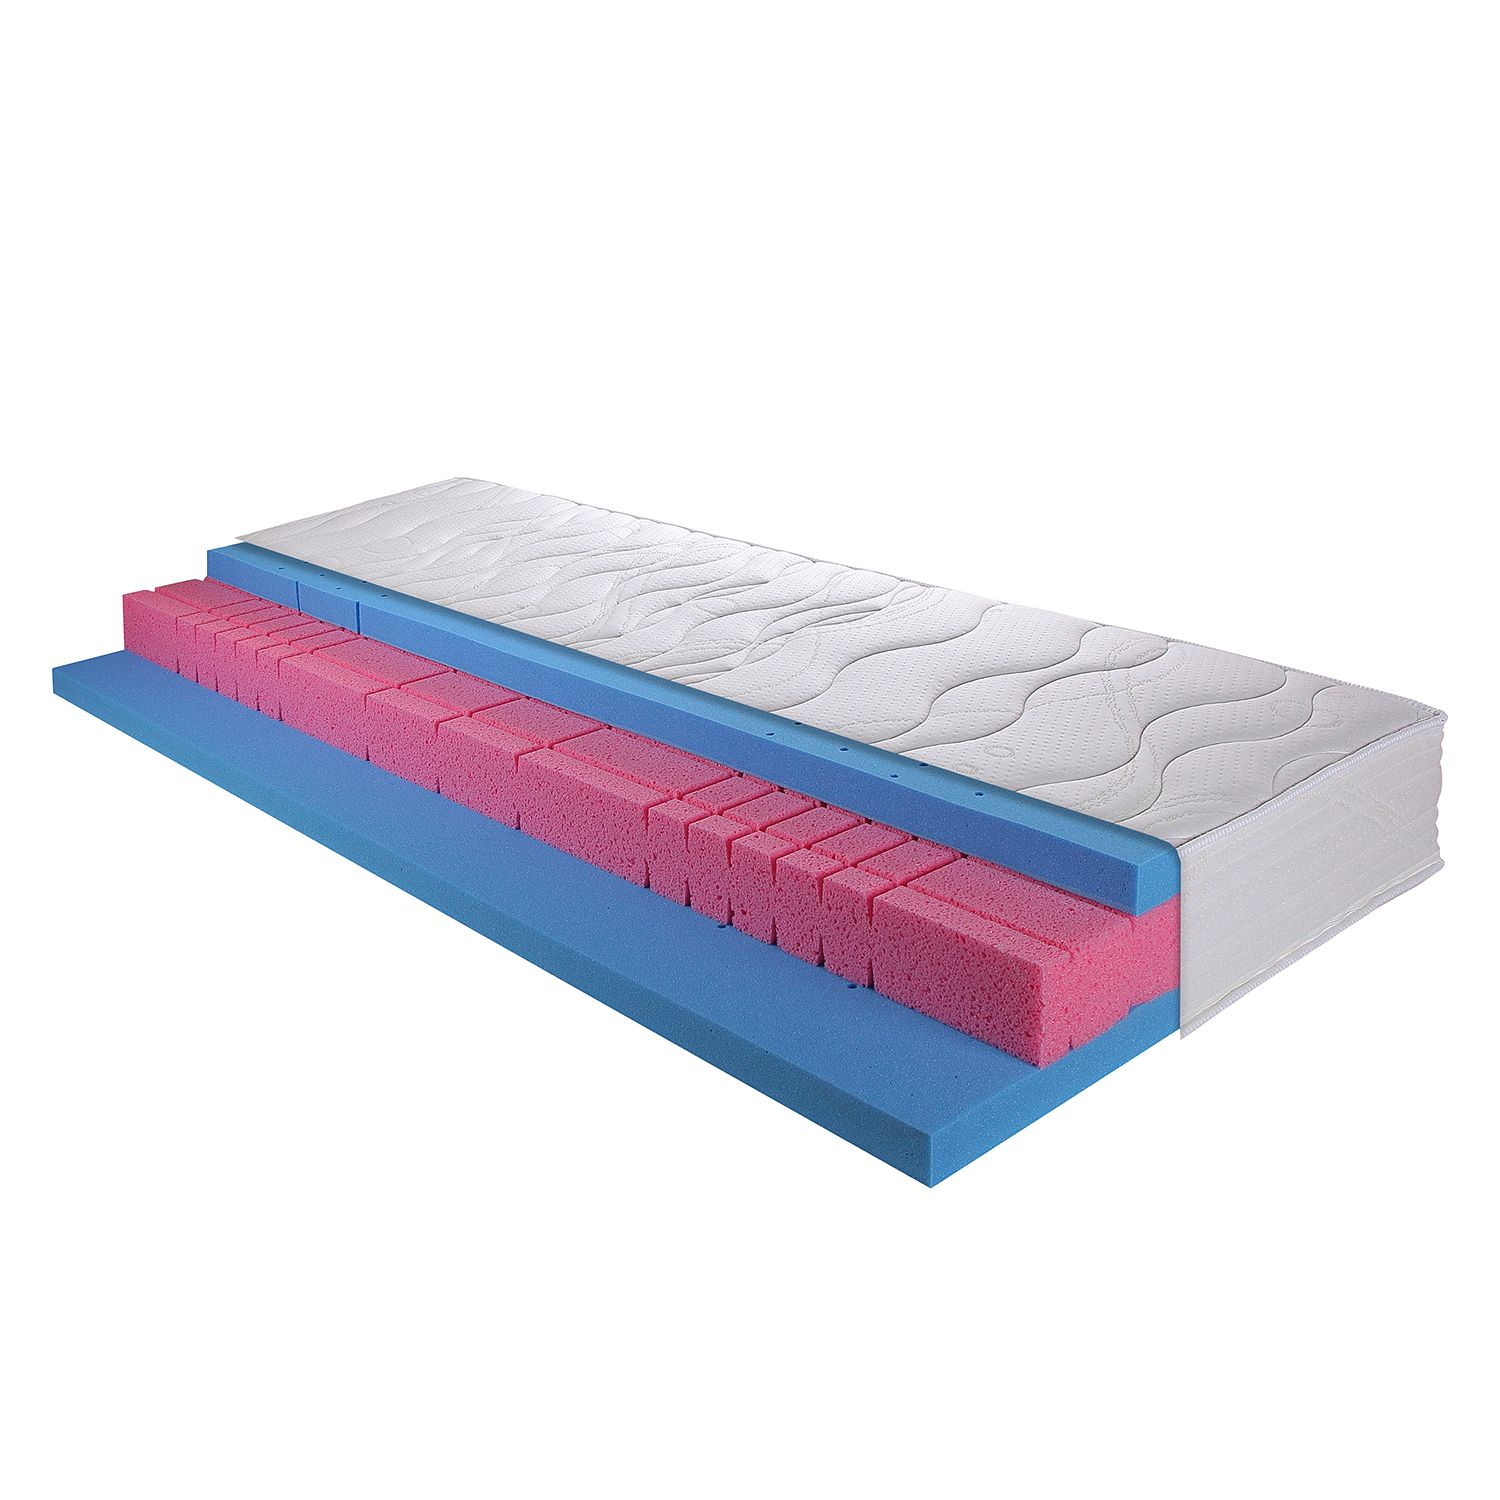 Matelas en mousse froide Ortho Air Gi - 80 x 200cm, Breckle